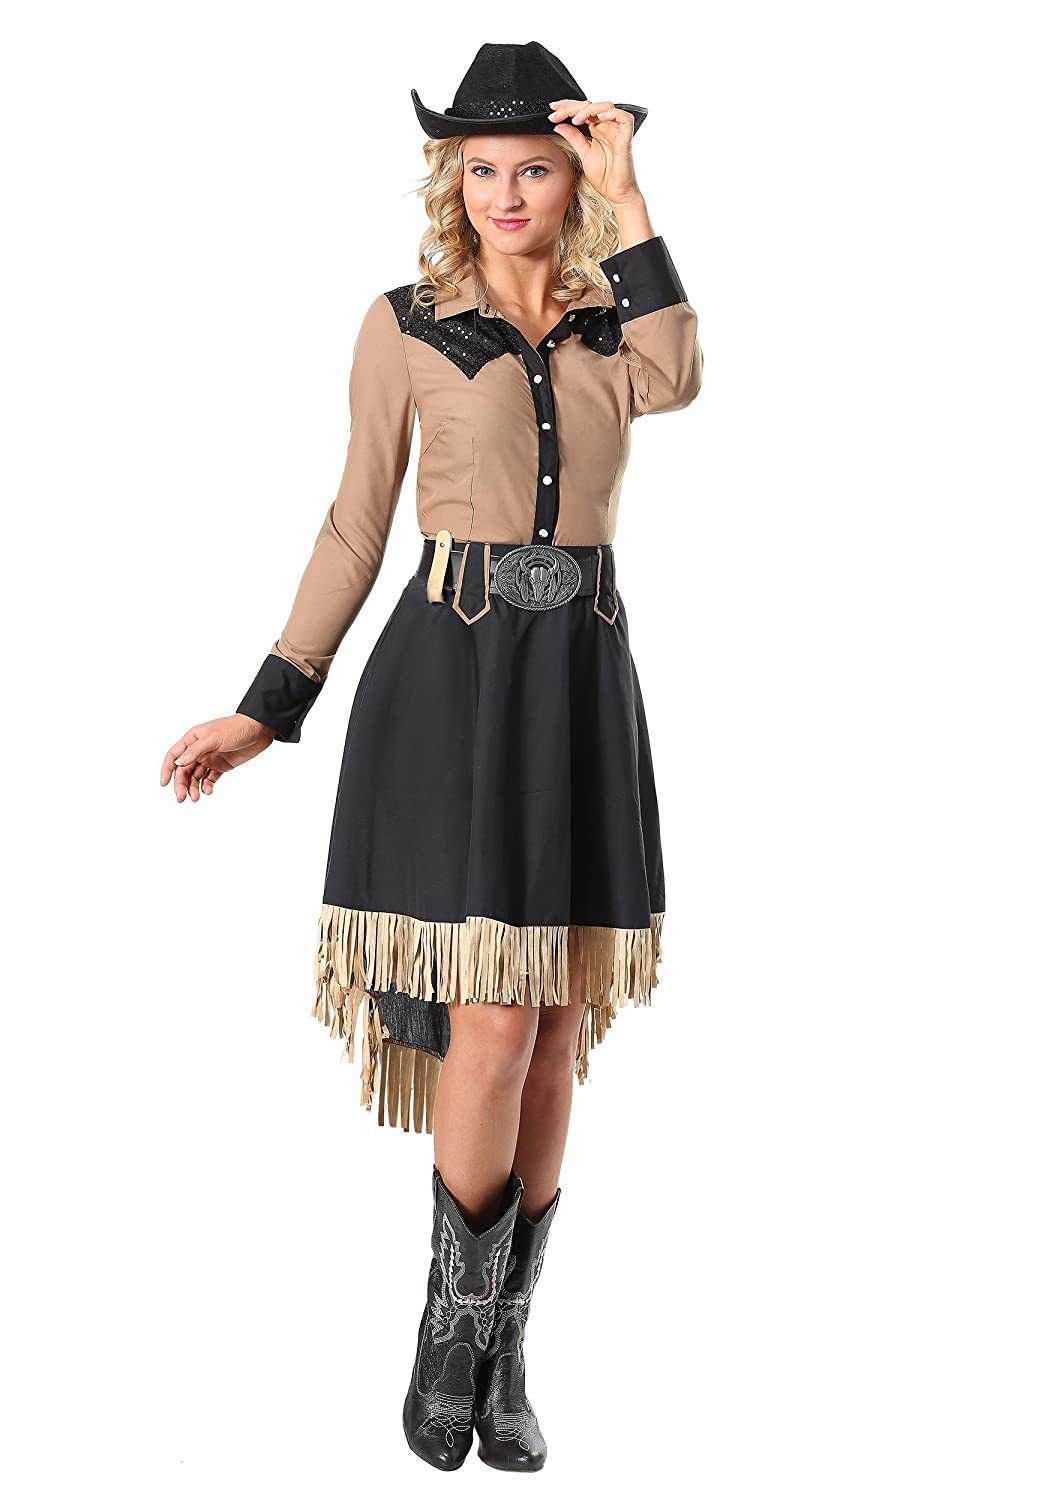 1930s Costumes- Bride of Frankenstein, Betty Boop, Olive Oyl, Bonnie & Clyde Womens Lasson Cowgirl Costume $49.99 AT vintagedancer.com